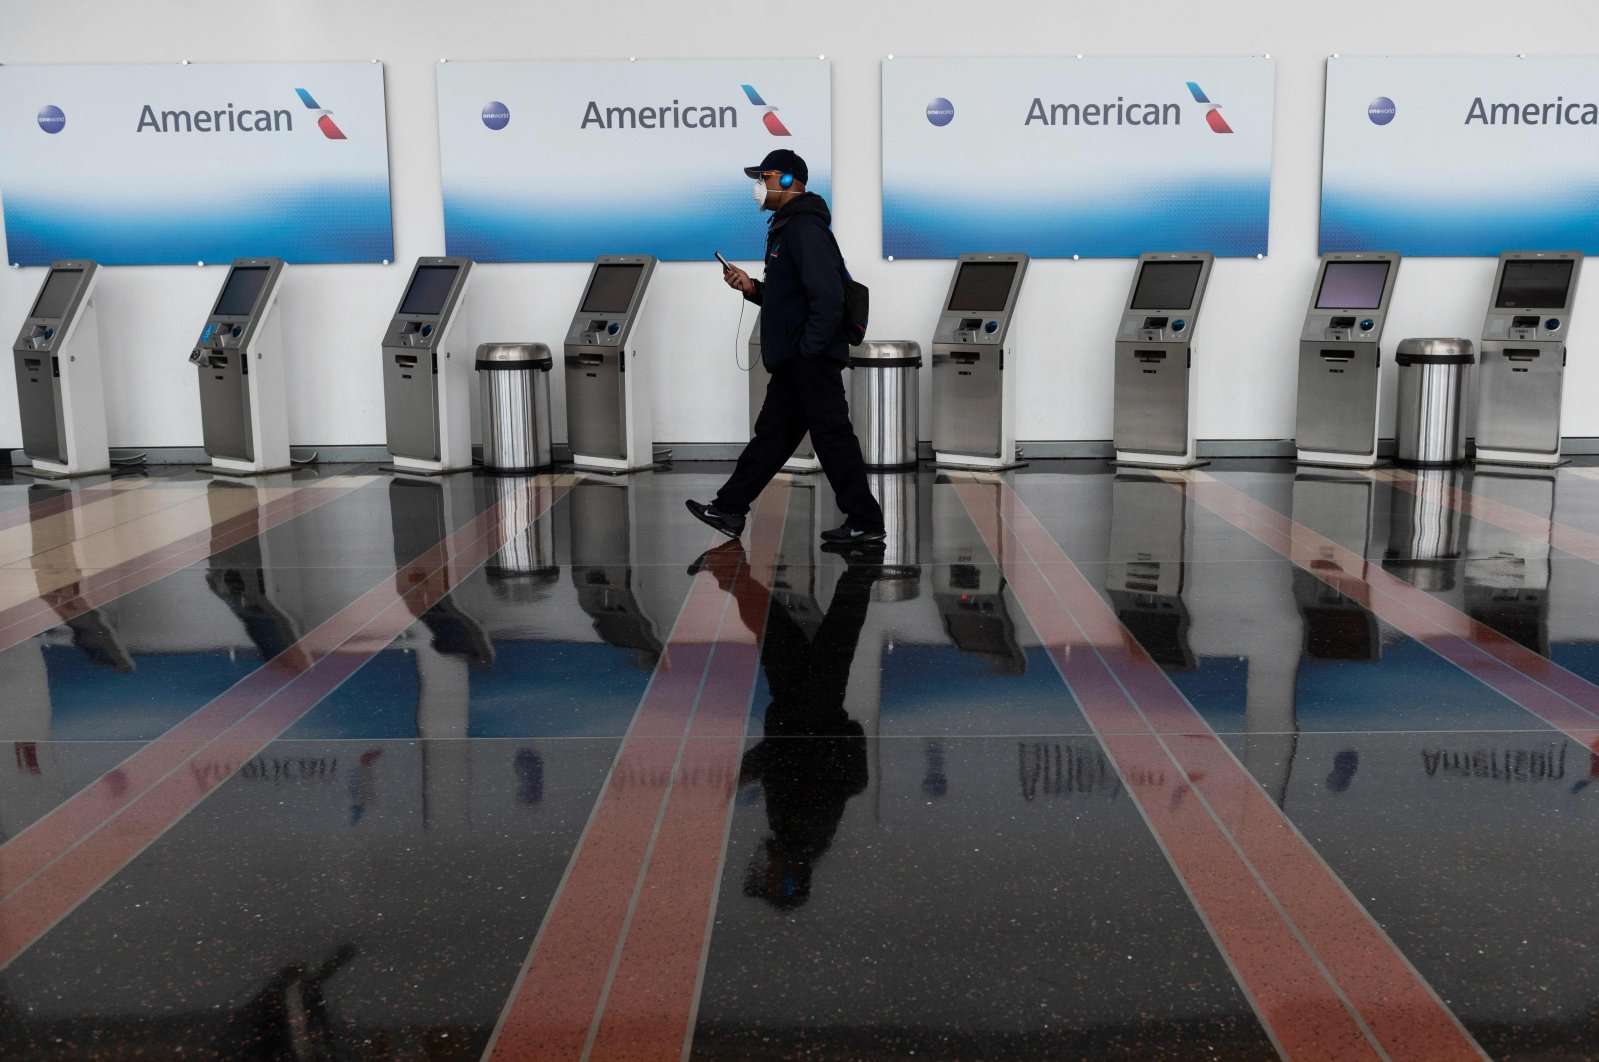 A passenger walks past empty American Airlines check-in terminals at Ronald Reagan Washington National Airport in Arlington, Virginia, the U.S., May 12, 2020. (AFP Photo)